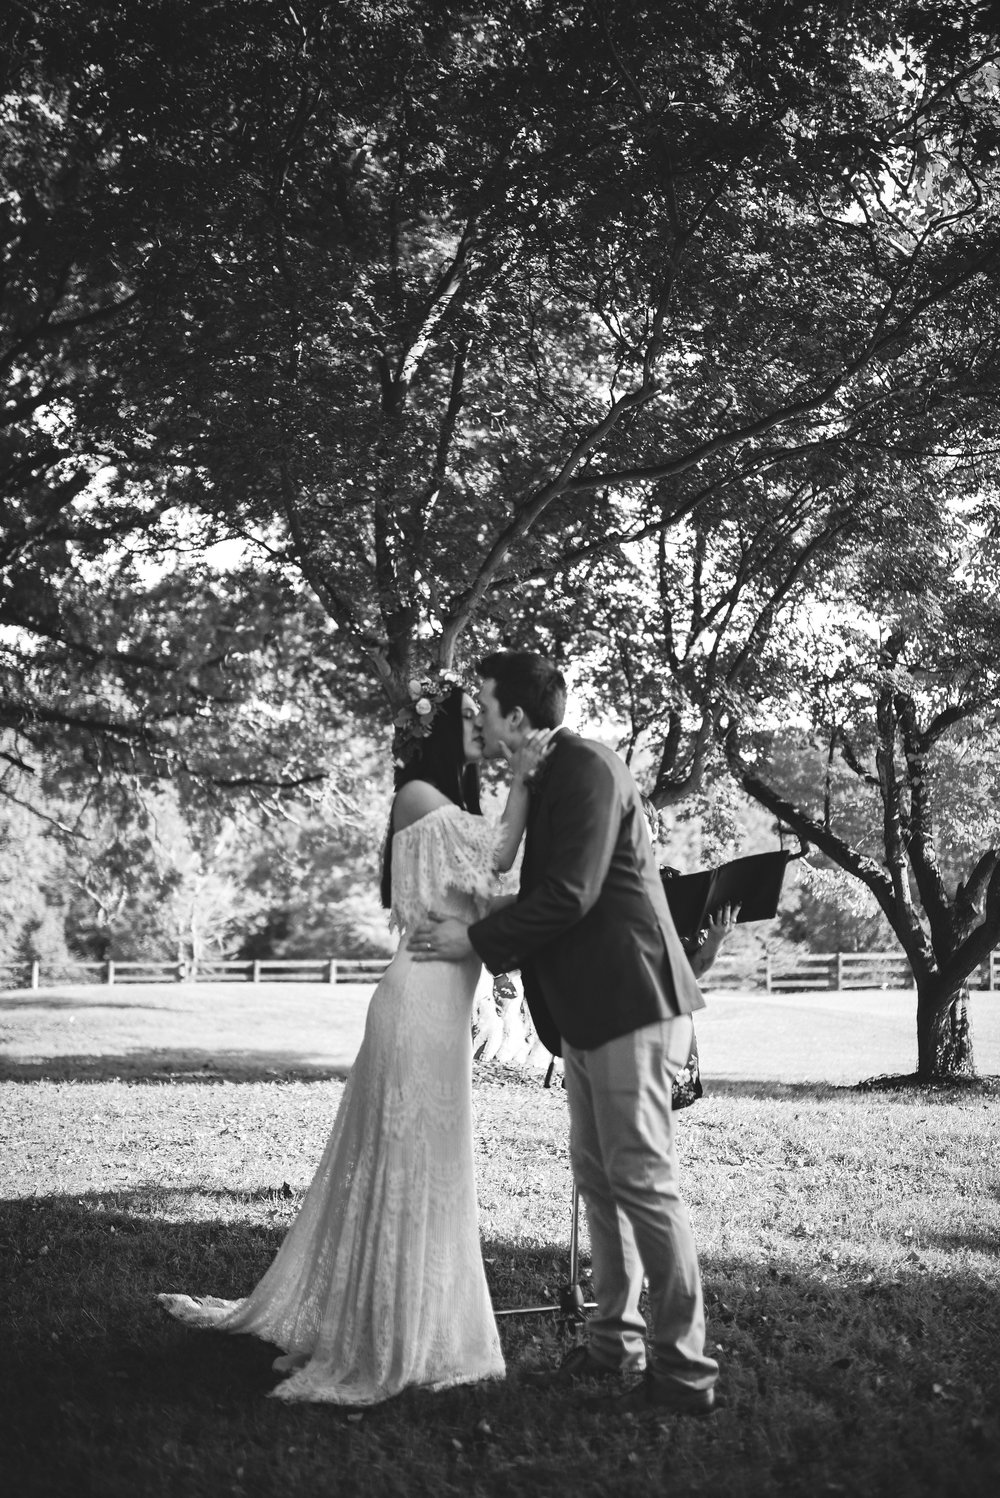 Maryland, Eastern Shore, Baltimore Wedding Photographer, Romantic, Boho, Backyard Wedding, Nature, Black and White Photo, First Kiss, Bride and Groom Share First Kiss